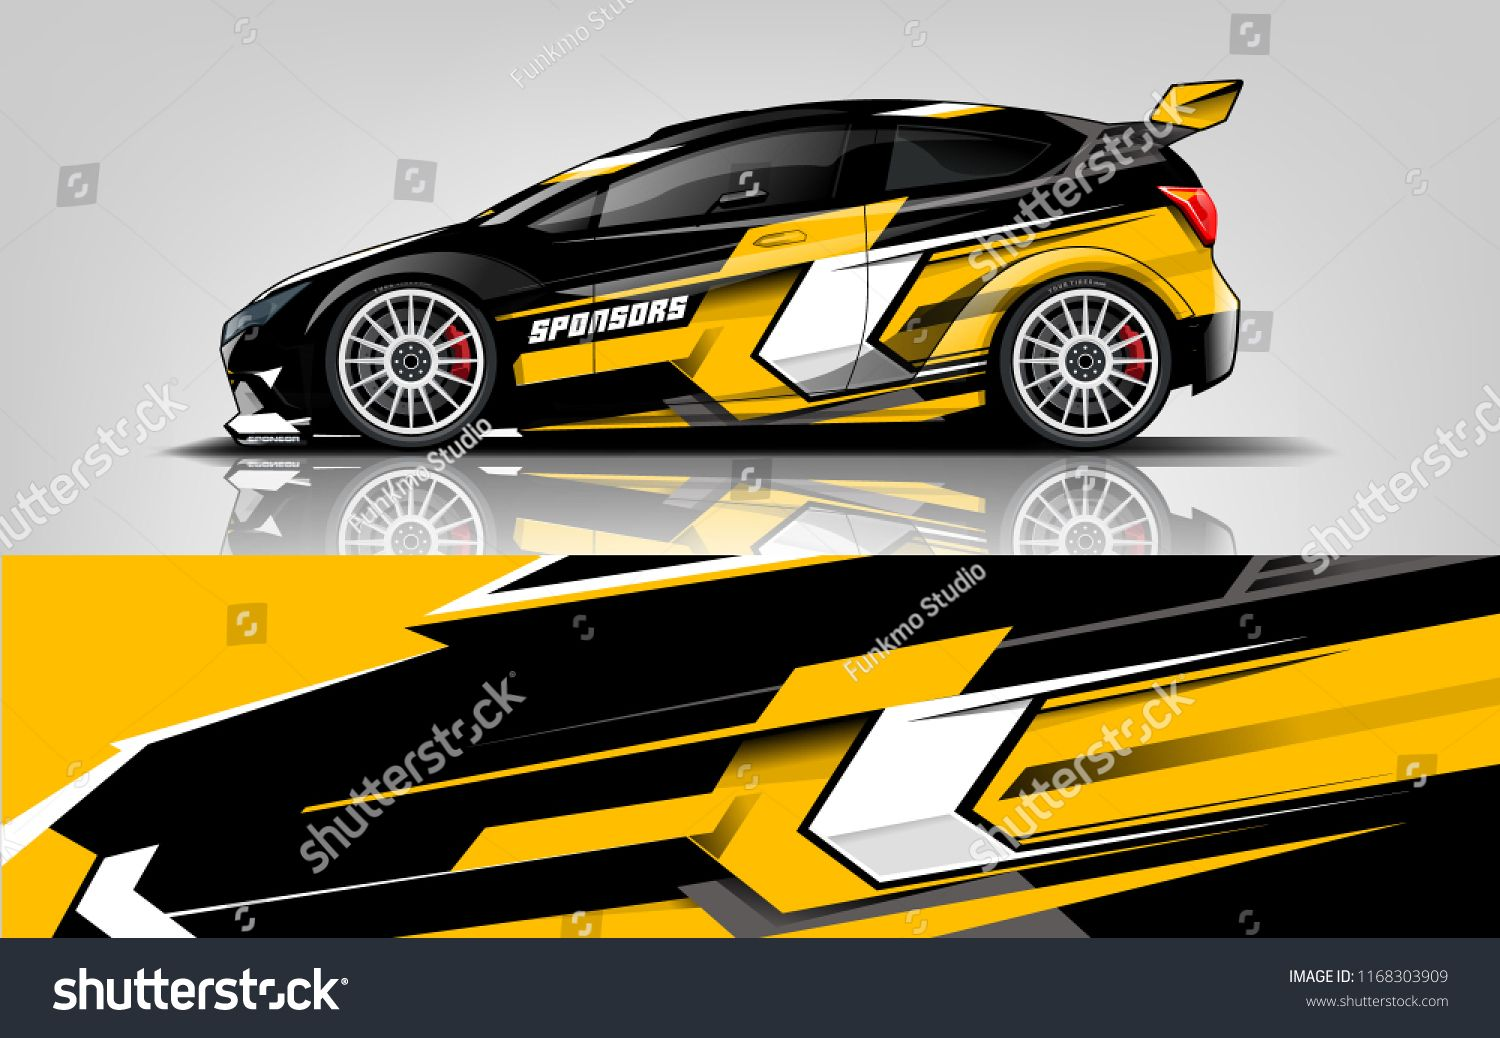 Race Car Sticker Design